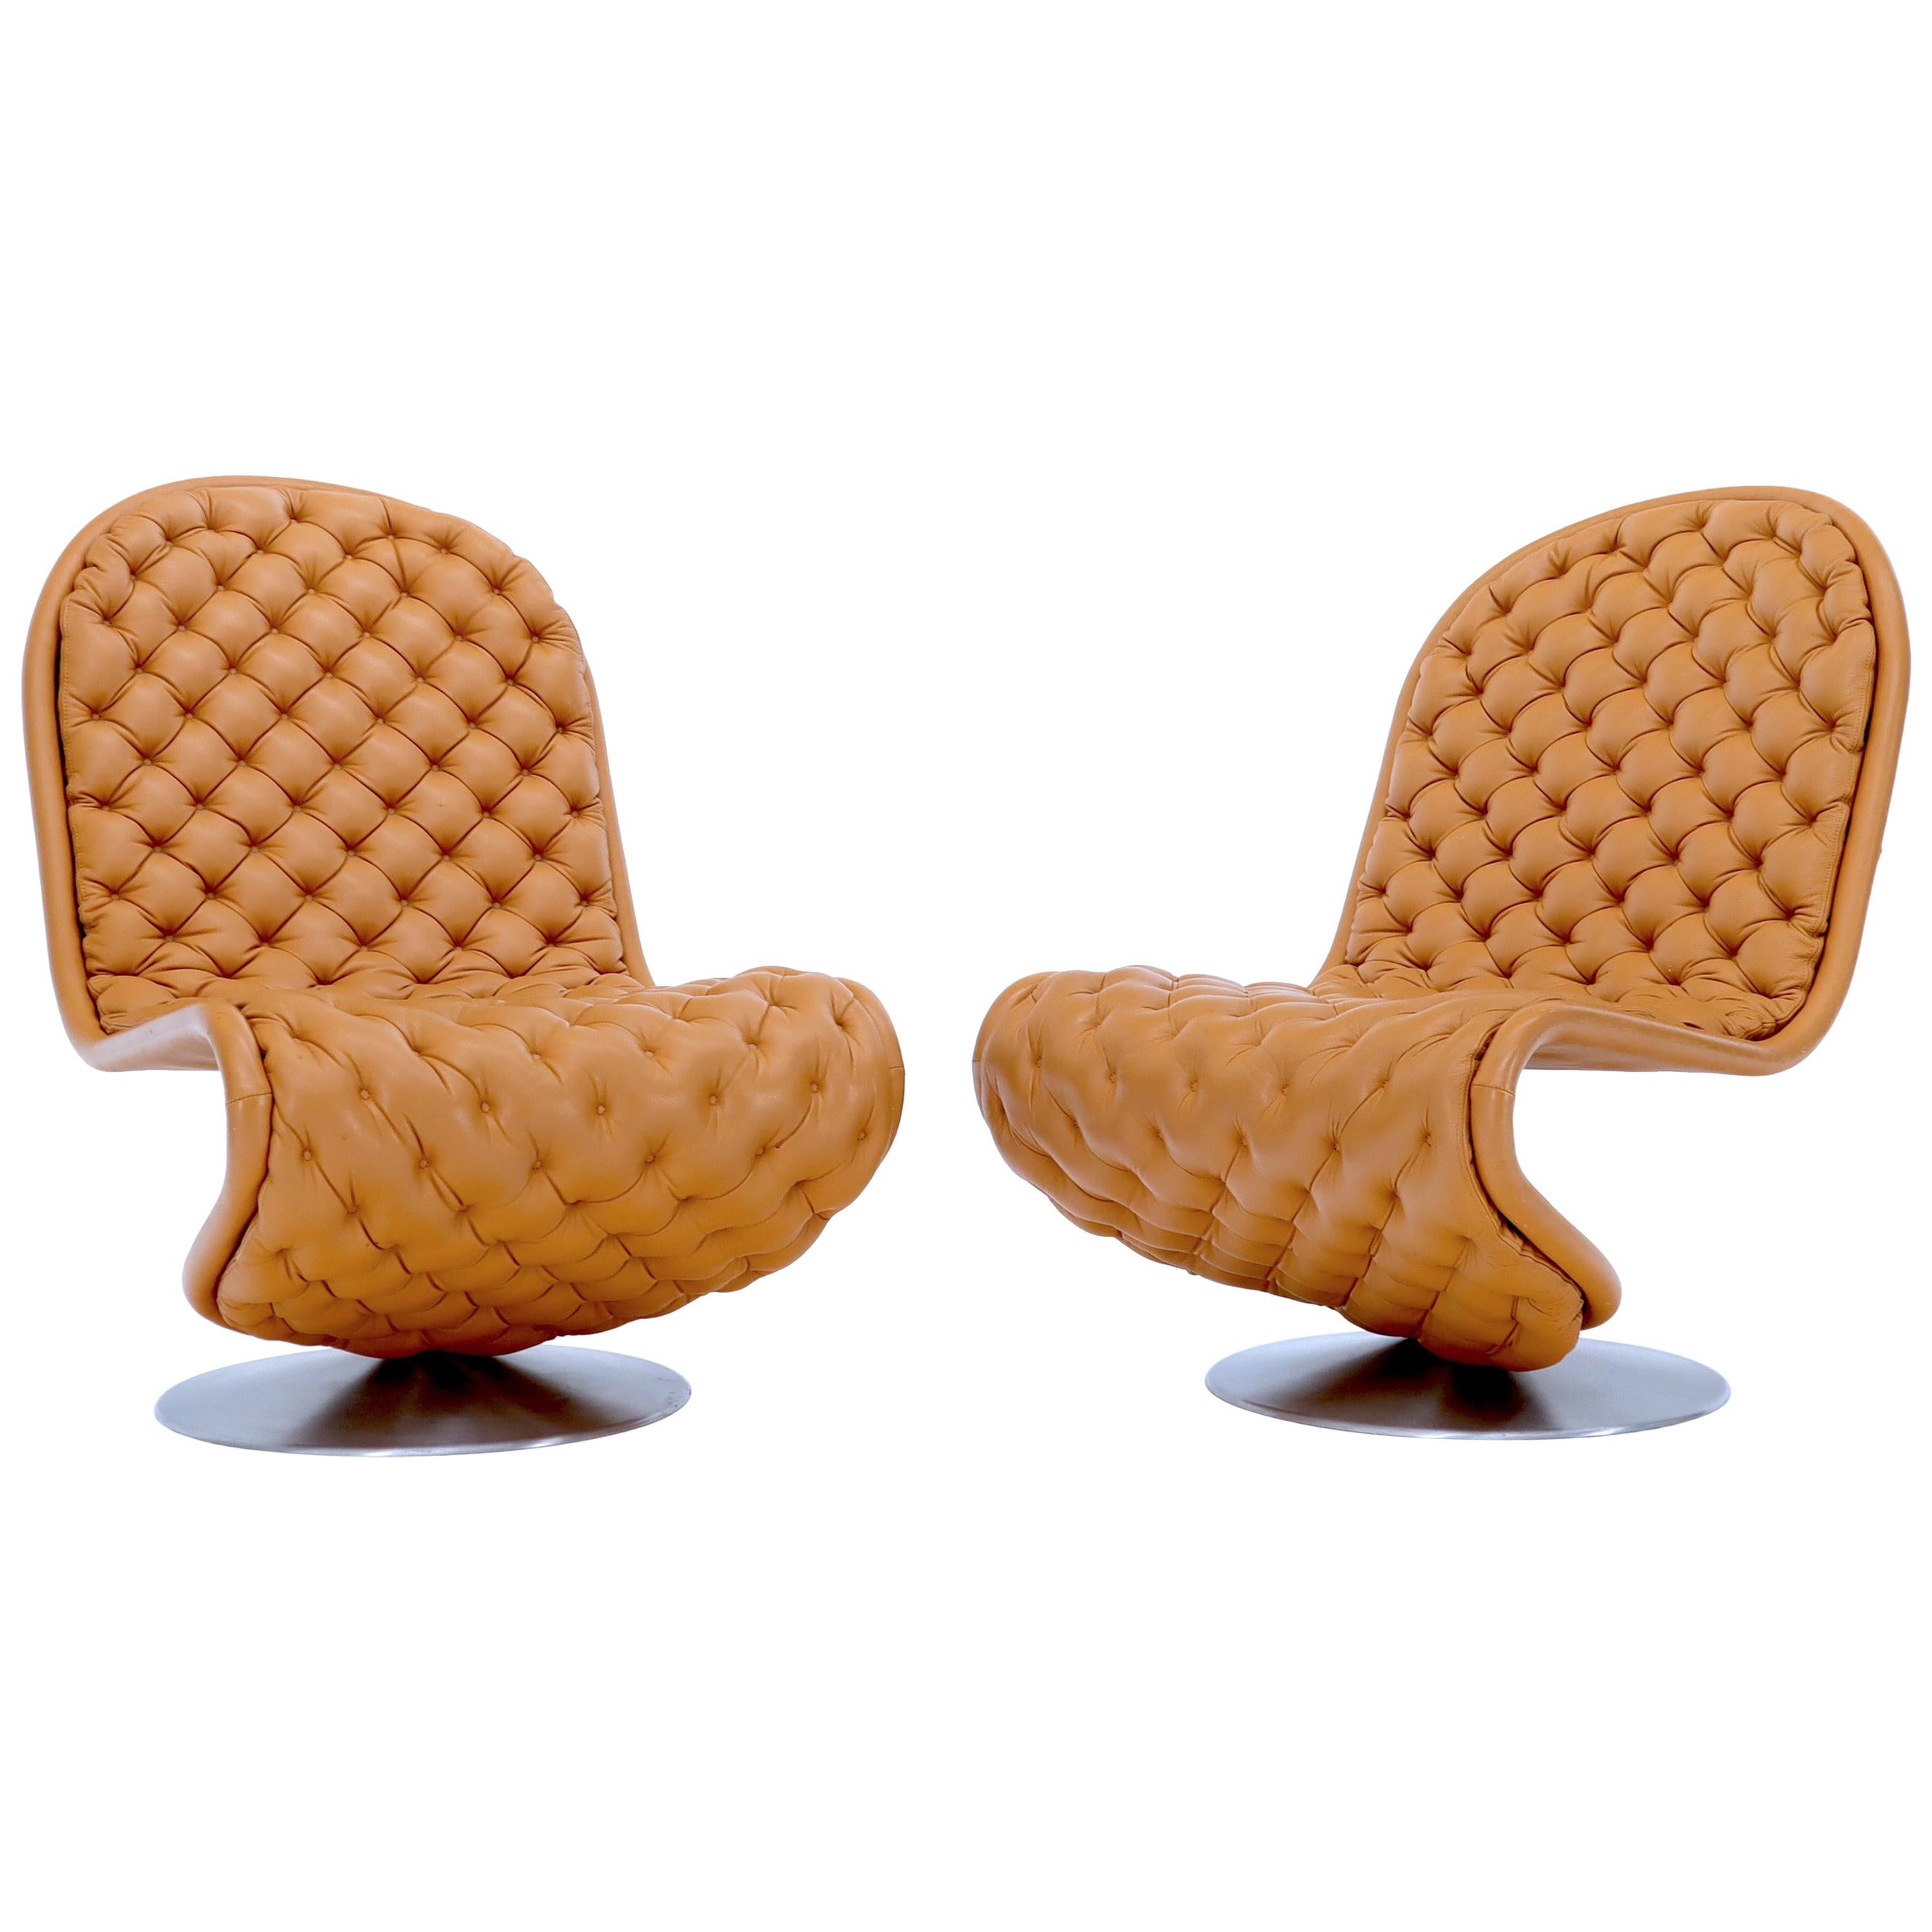 Pair of Verner Panton Tan Tufted Leather 123 Lounge Chairs